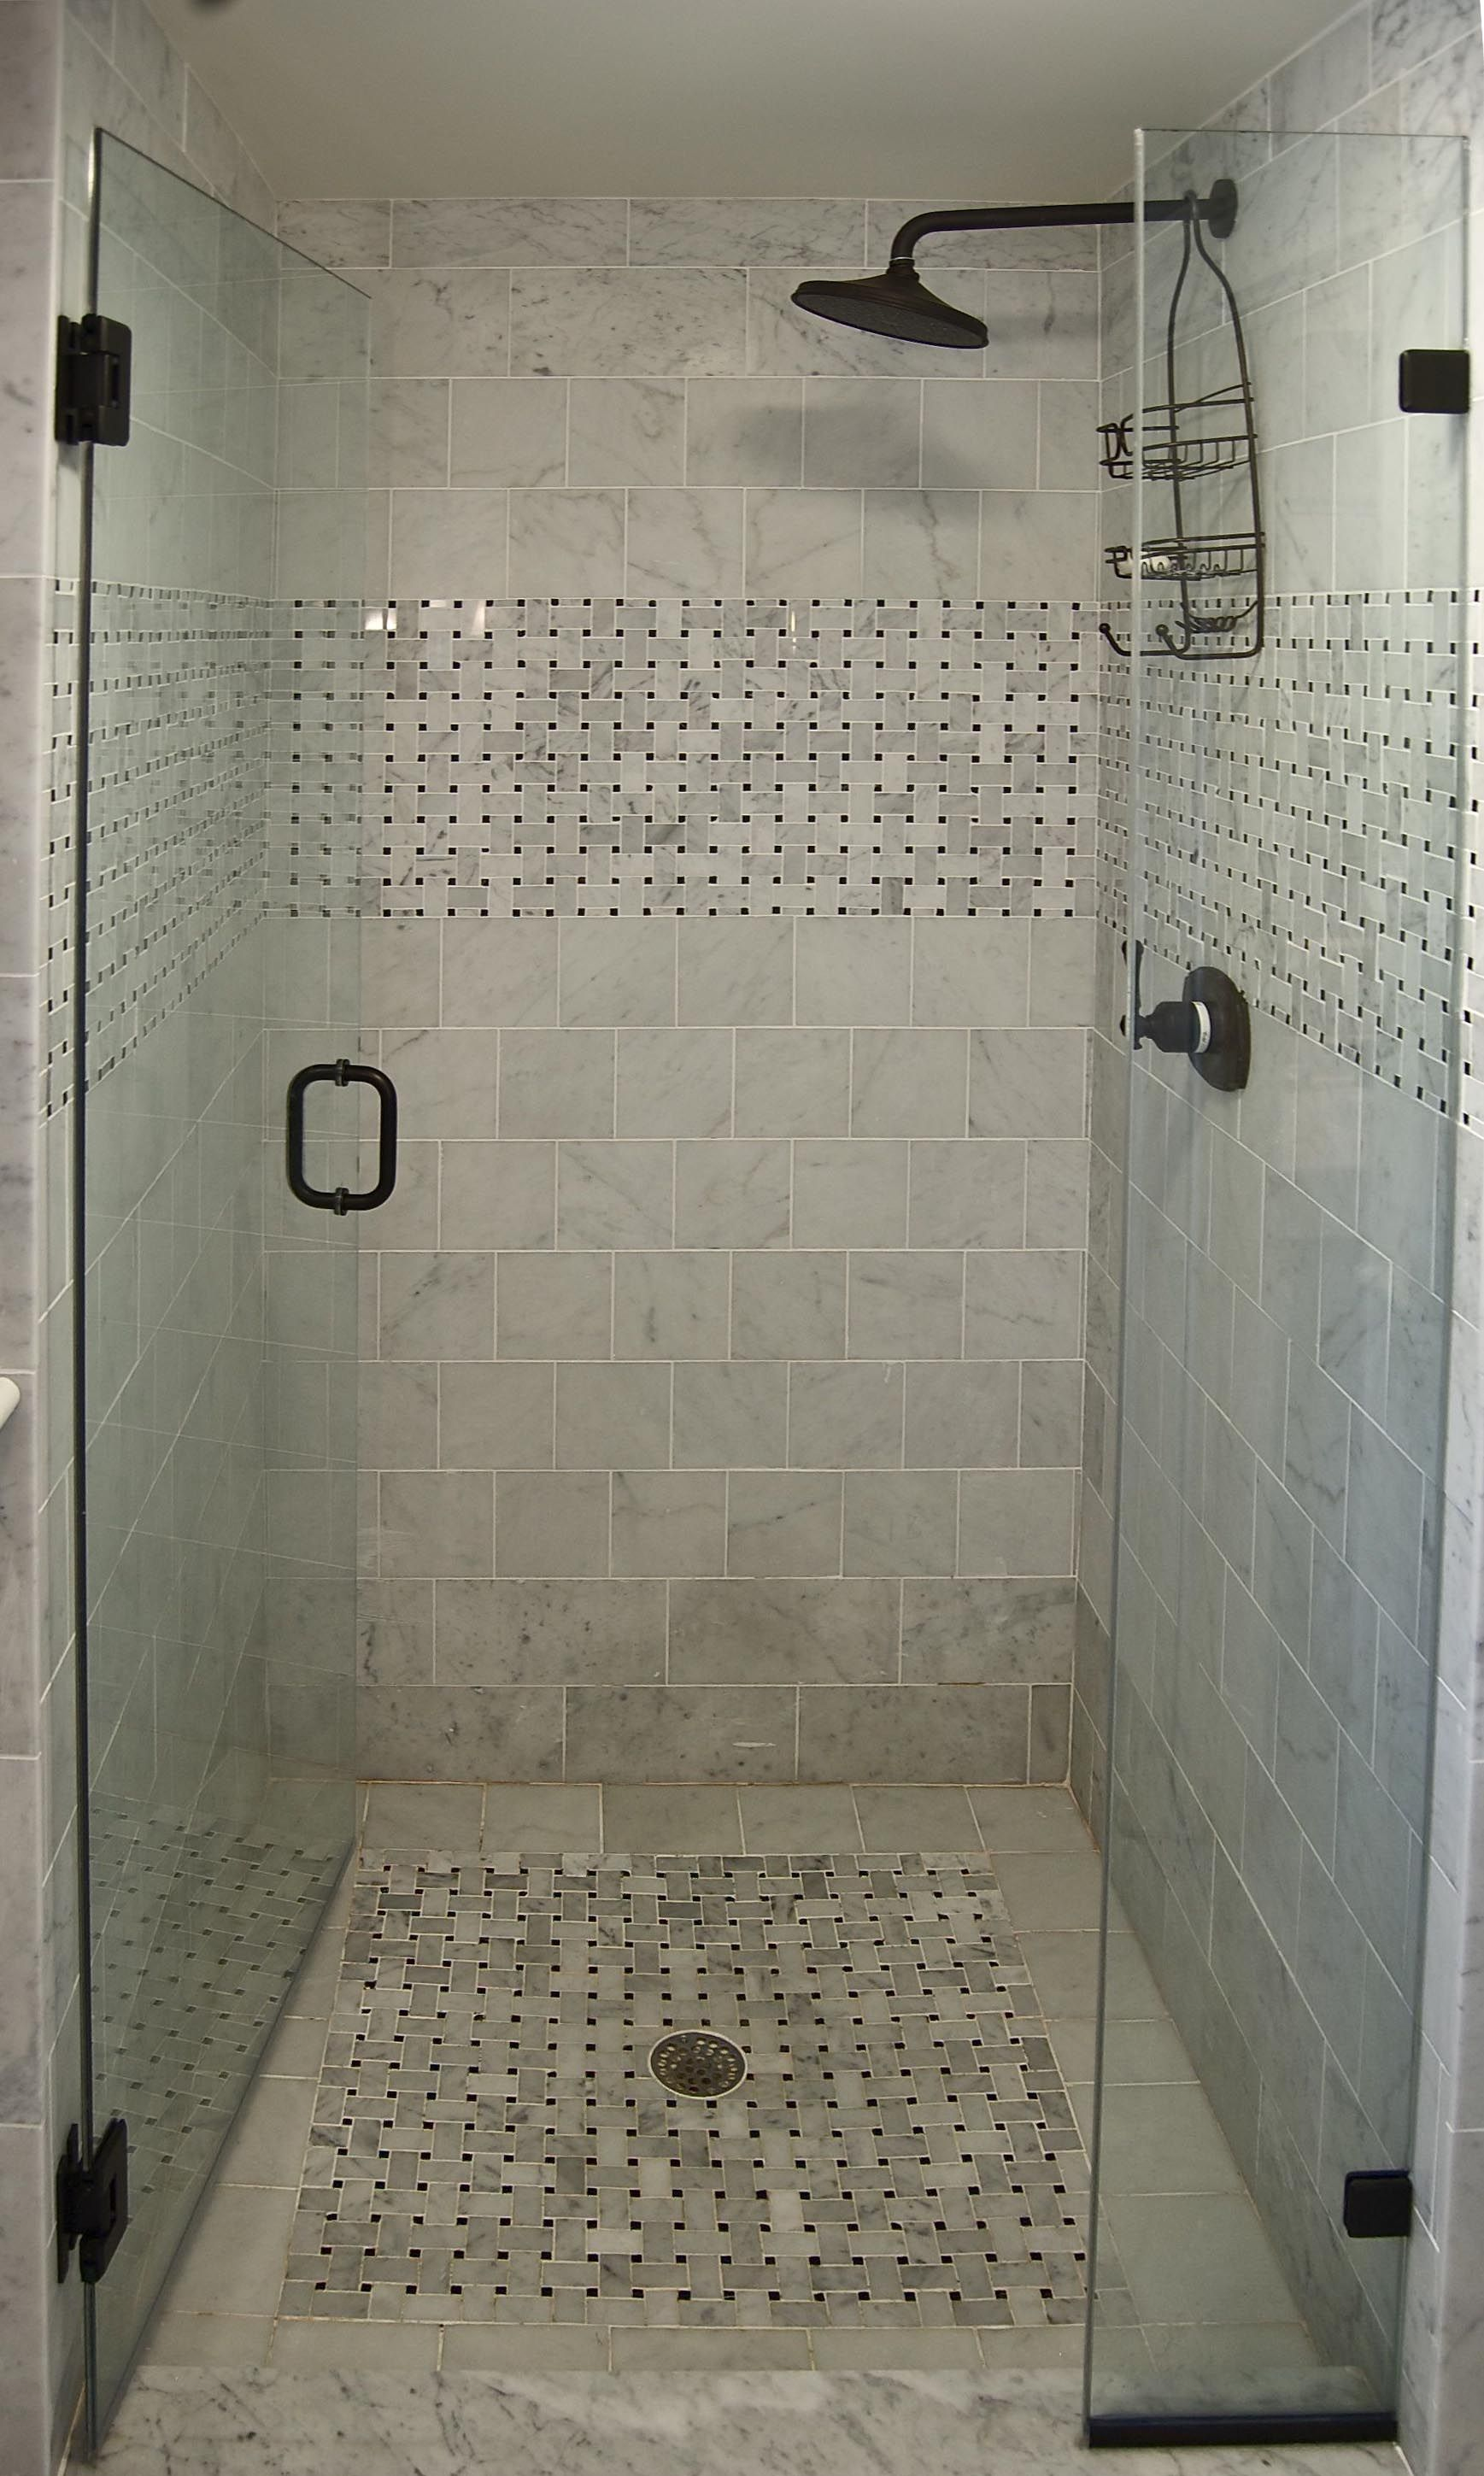 Tile Floor Designs For Small Bathrooms How To Clean Grout In Shower With Environmentally Friendly